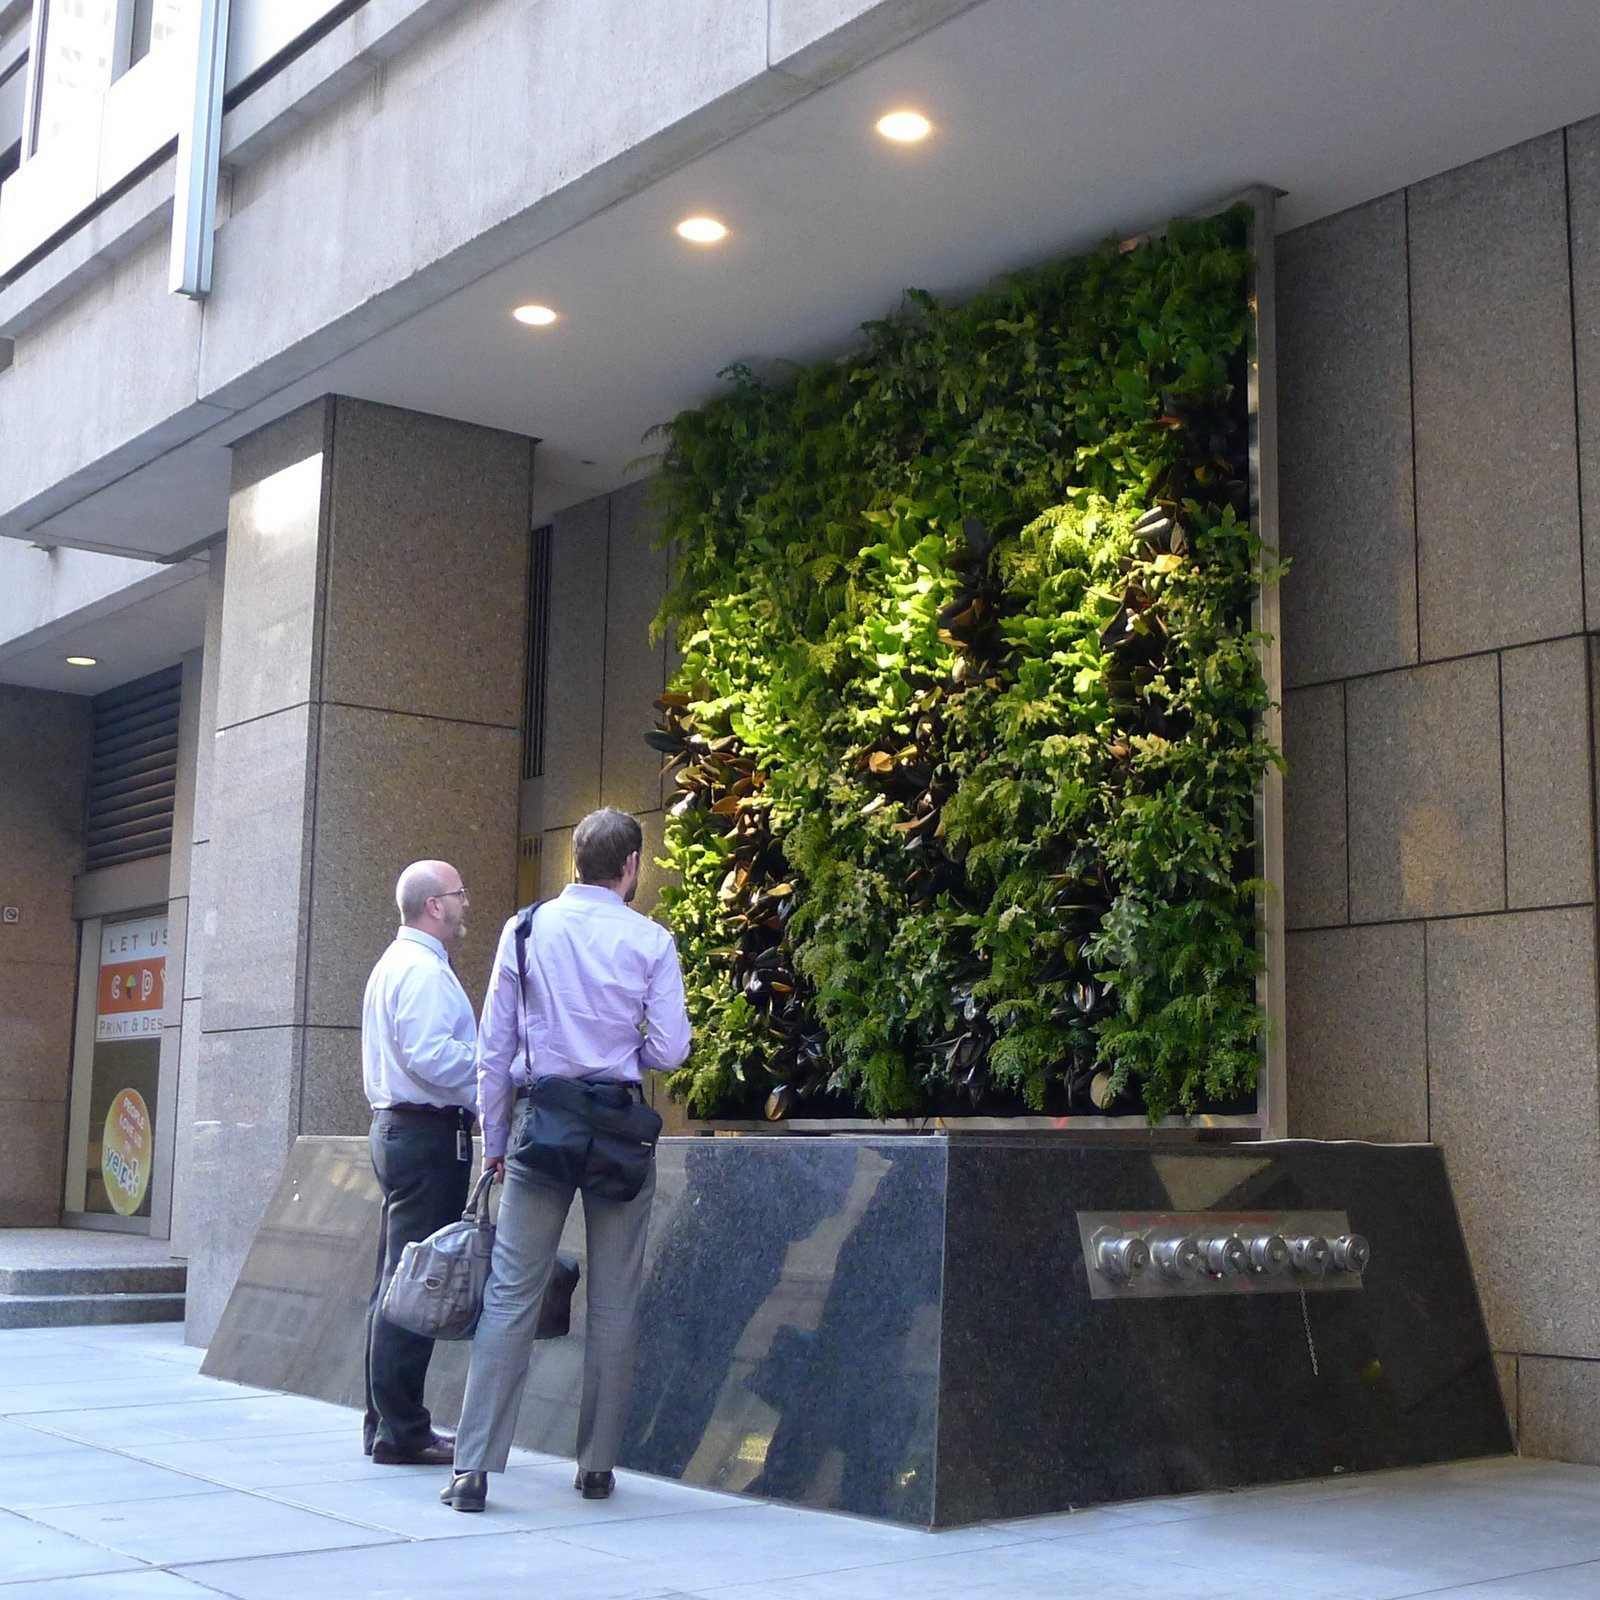 Chris Bribach, Plants On Walls. CBRE Office Towers, San Francisco. Florafelt System.